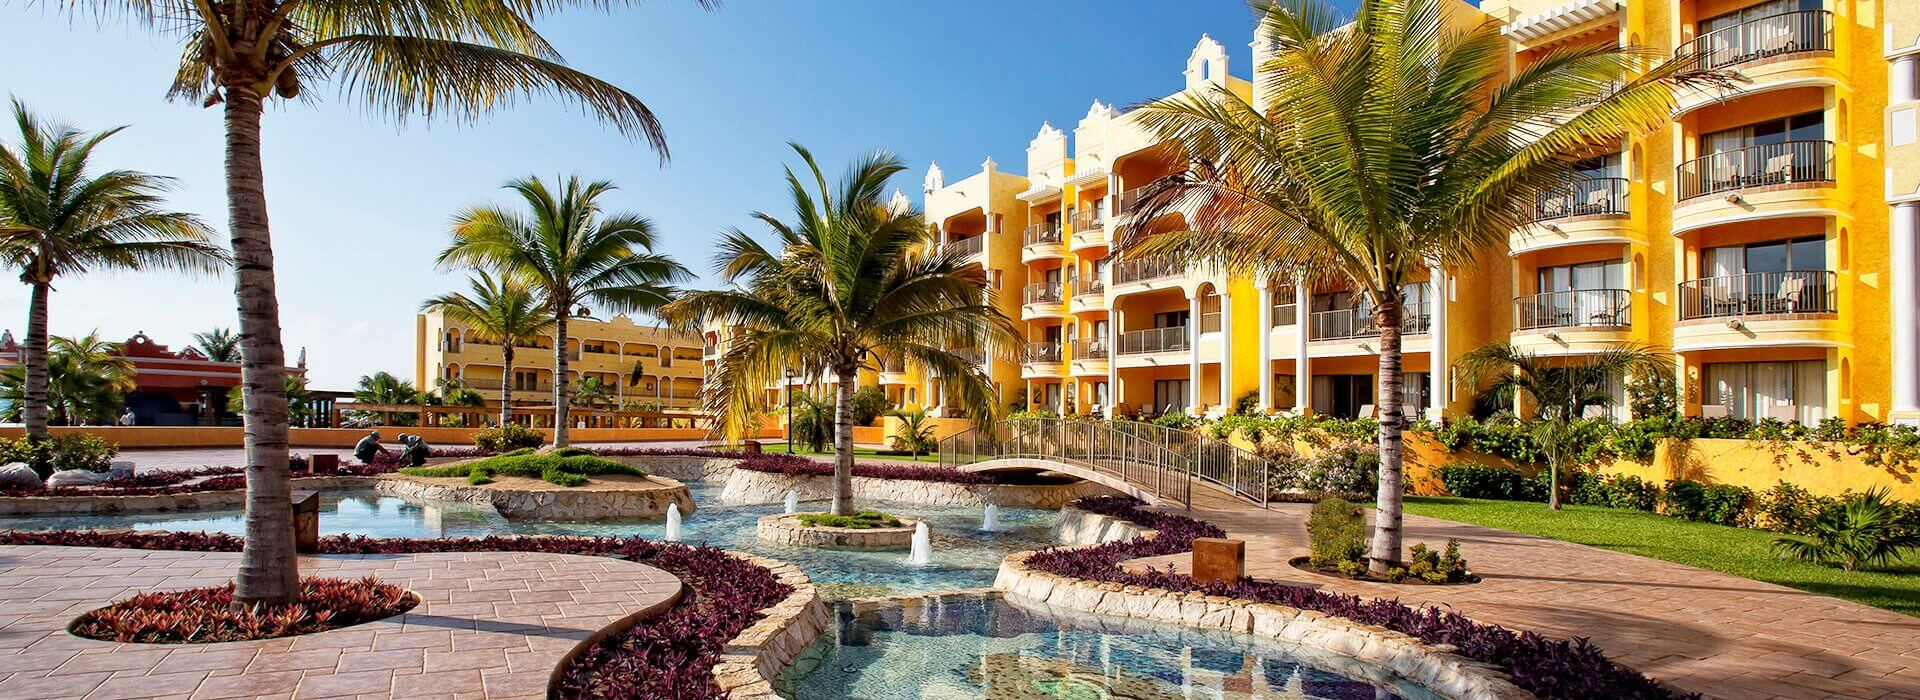 The Royal Haciendas all inclusive Resort in Playa del Carmen